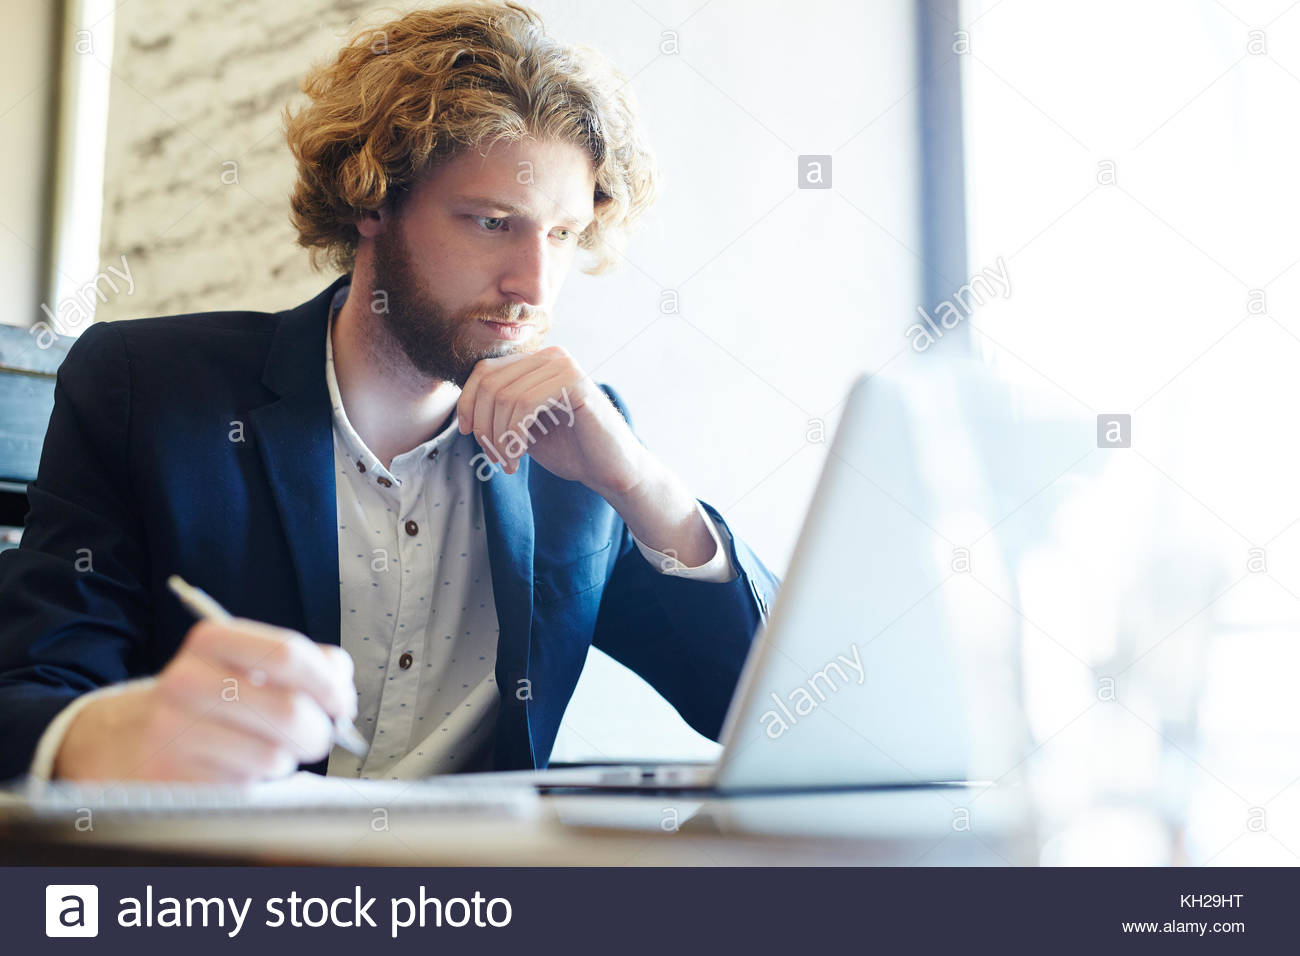 Pensive young man looking at online data in front of laptop - Stock Image